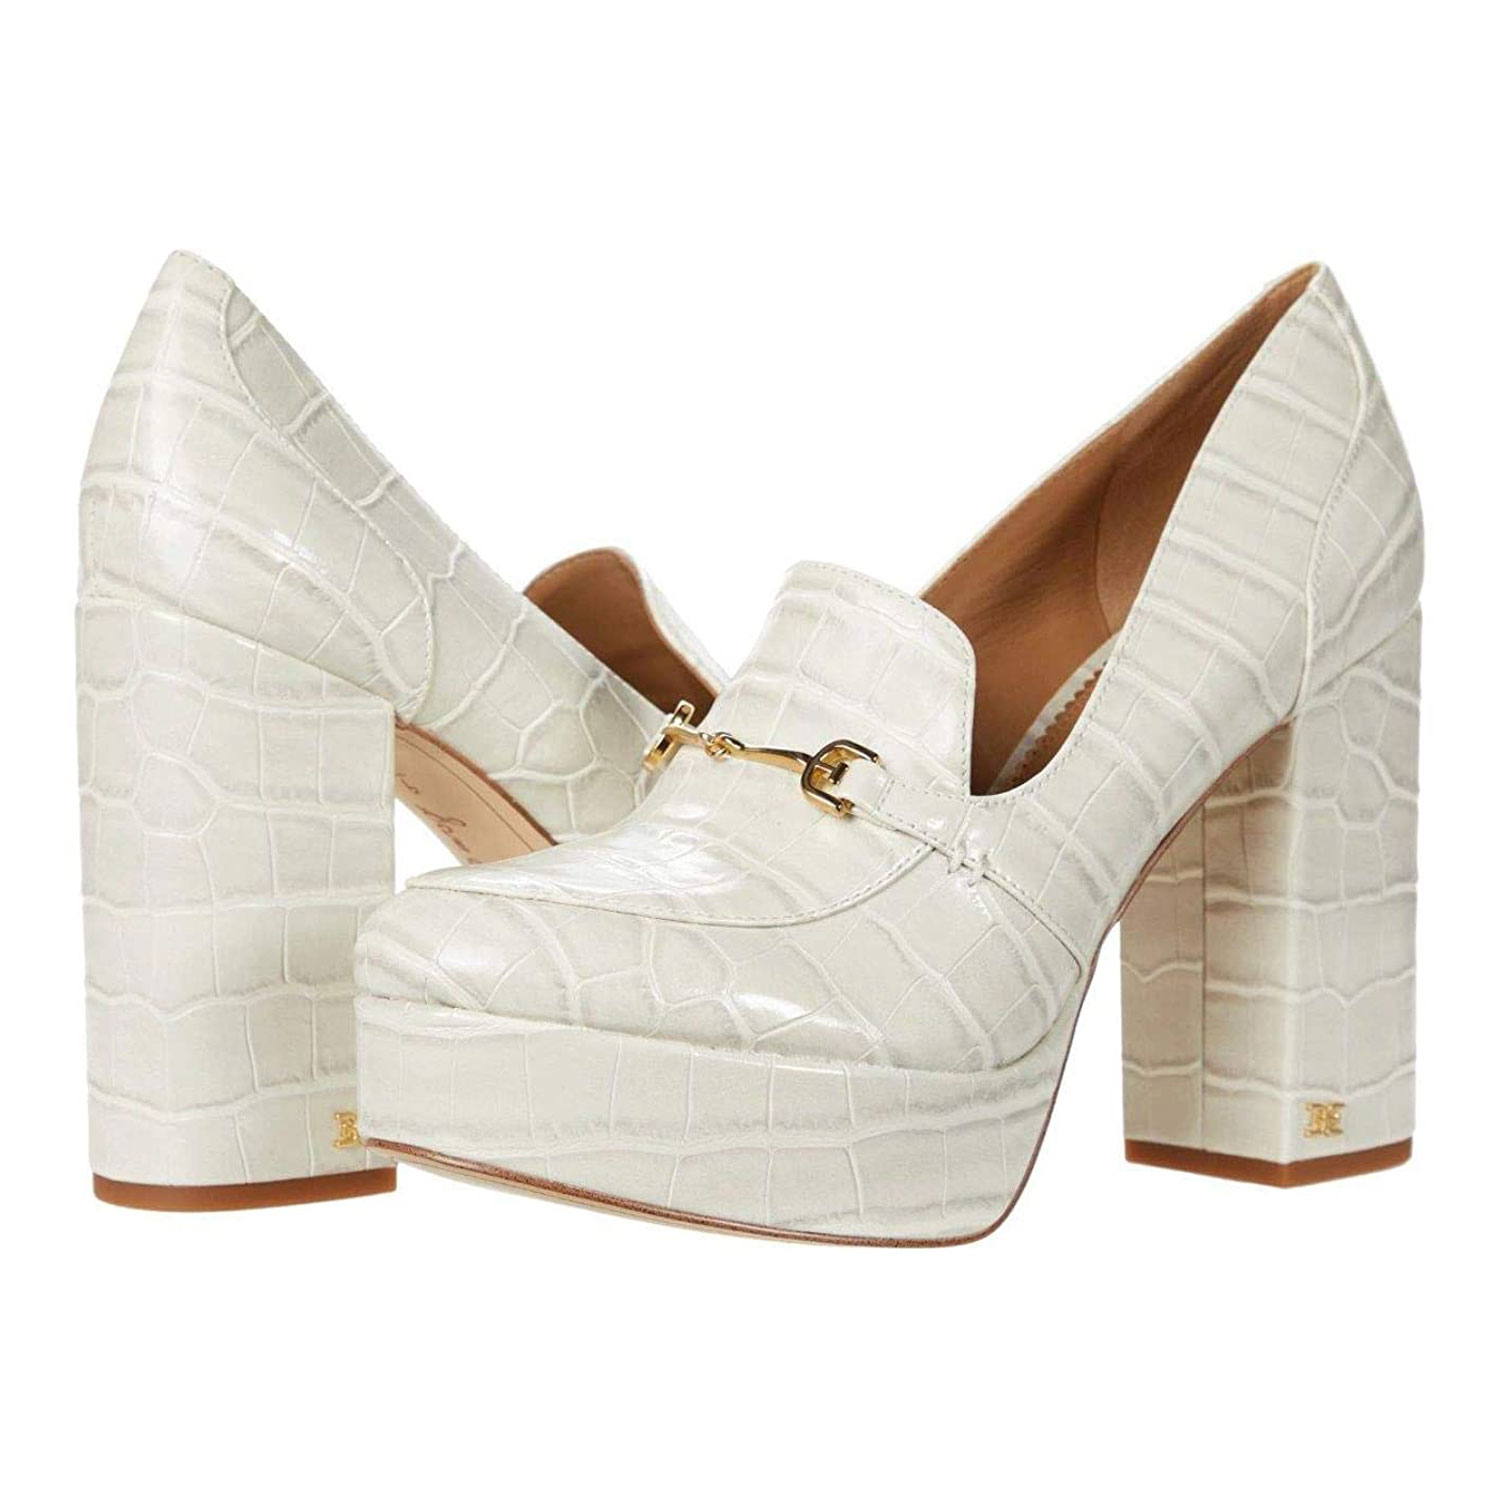 Sam Edelman Aretha pumps